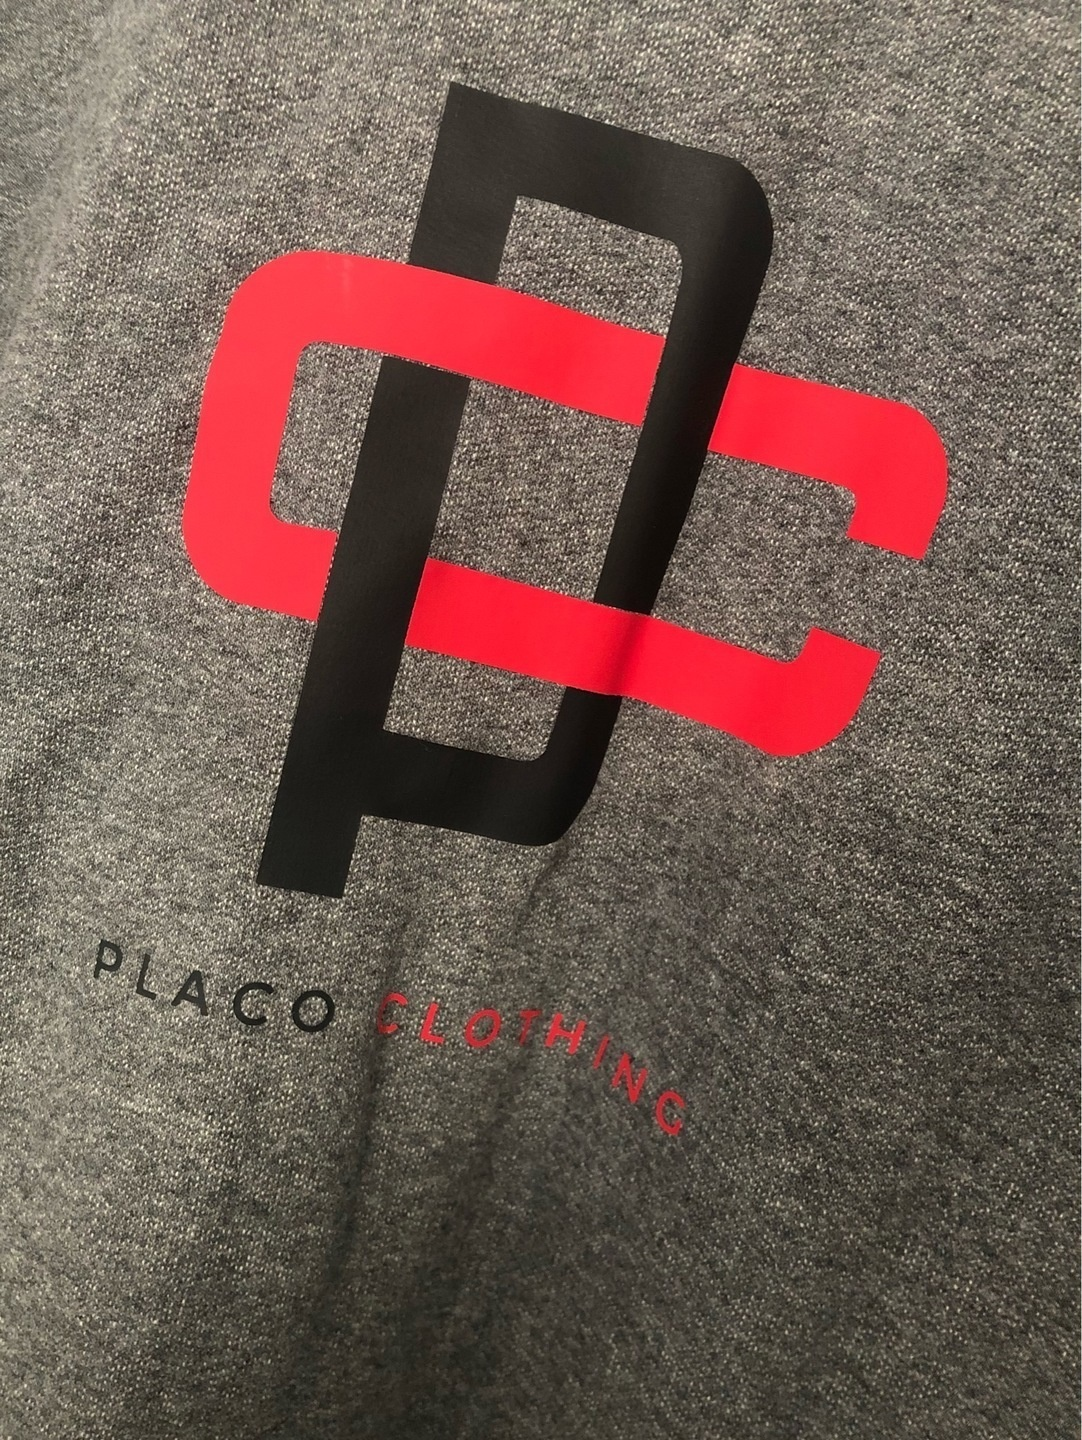 Women's hoodies & sweatshirts - PLACO CLOTHING photo 4